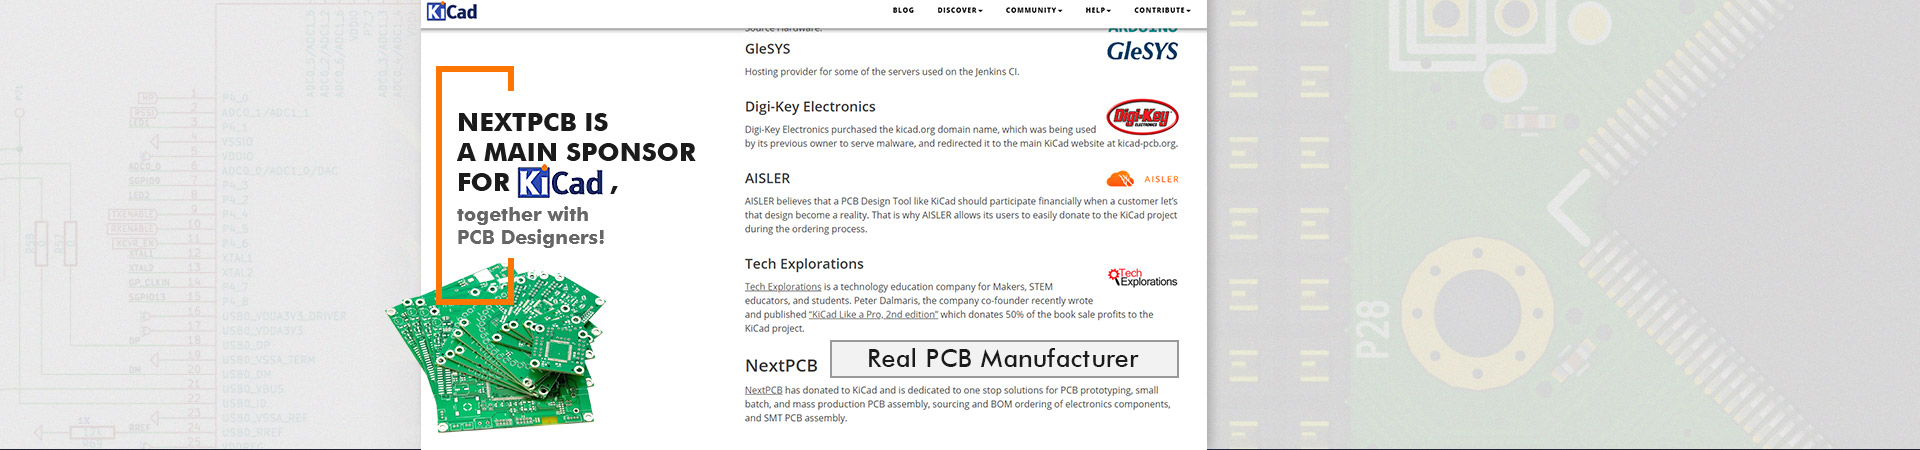 NextPCB is a main sponsor for Kicad